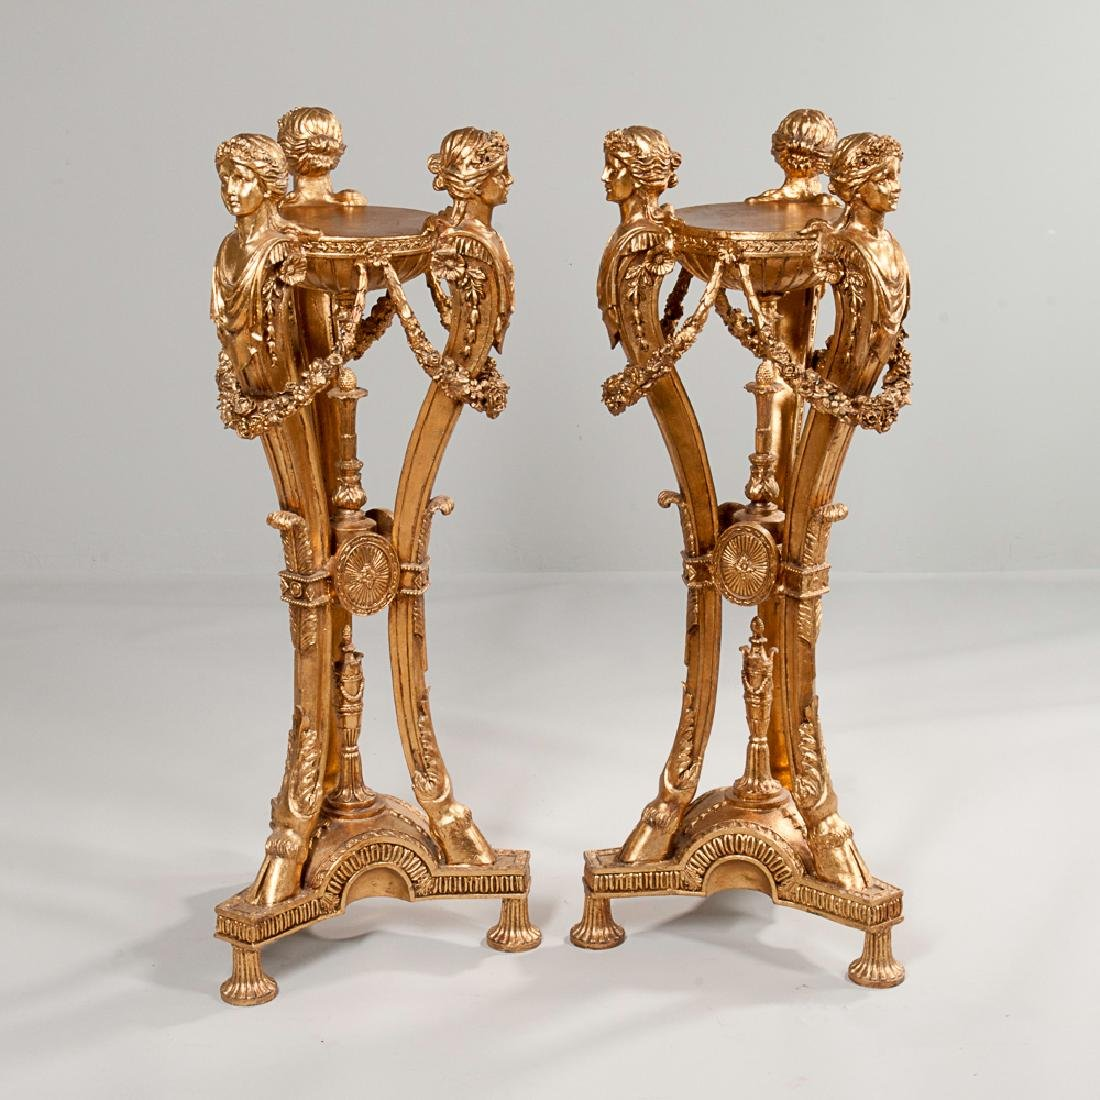 Pair of Neoclassical-style Giltwood Plant Stands